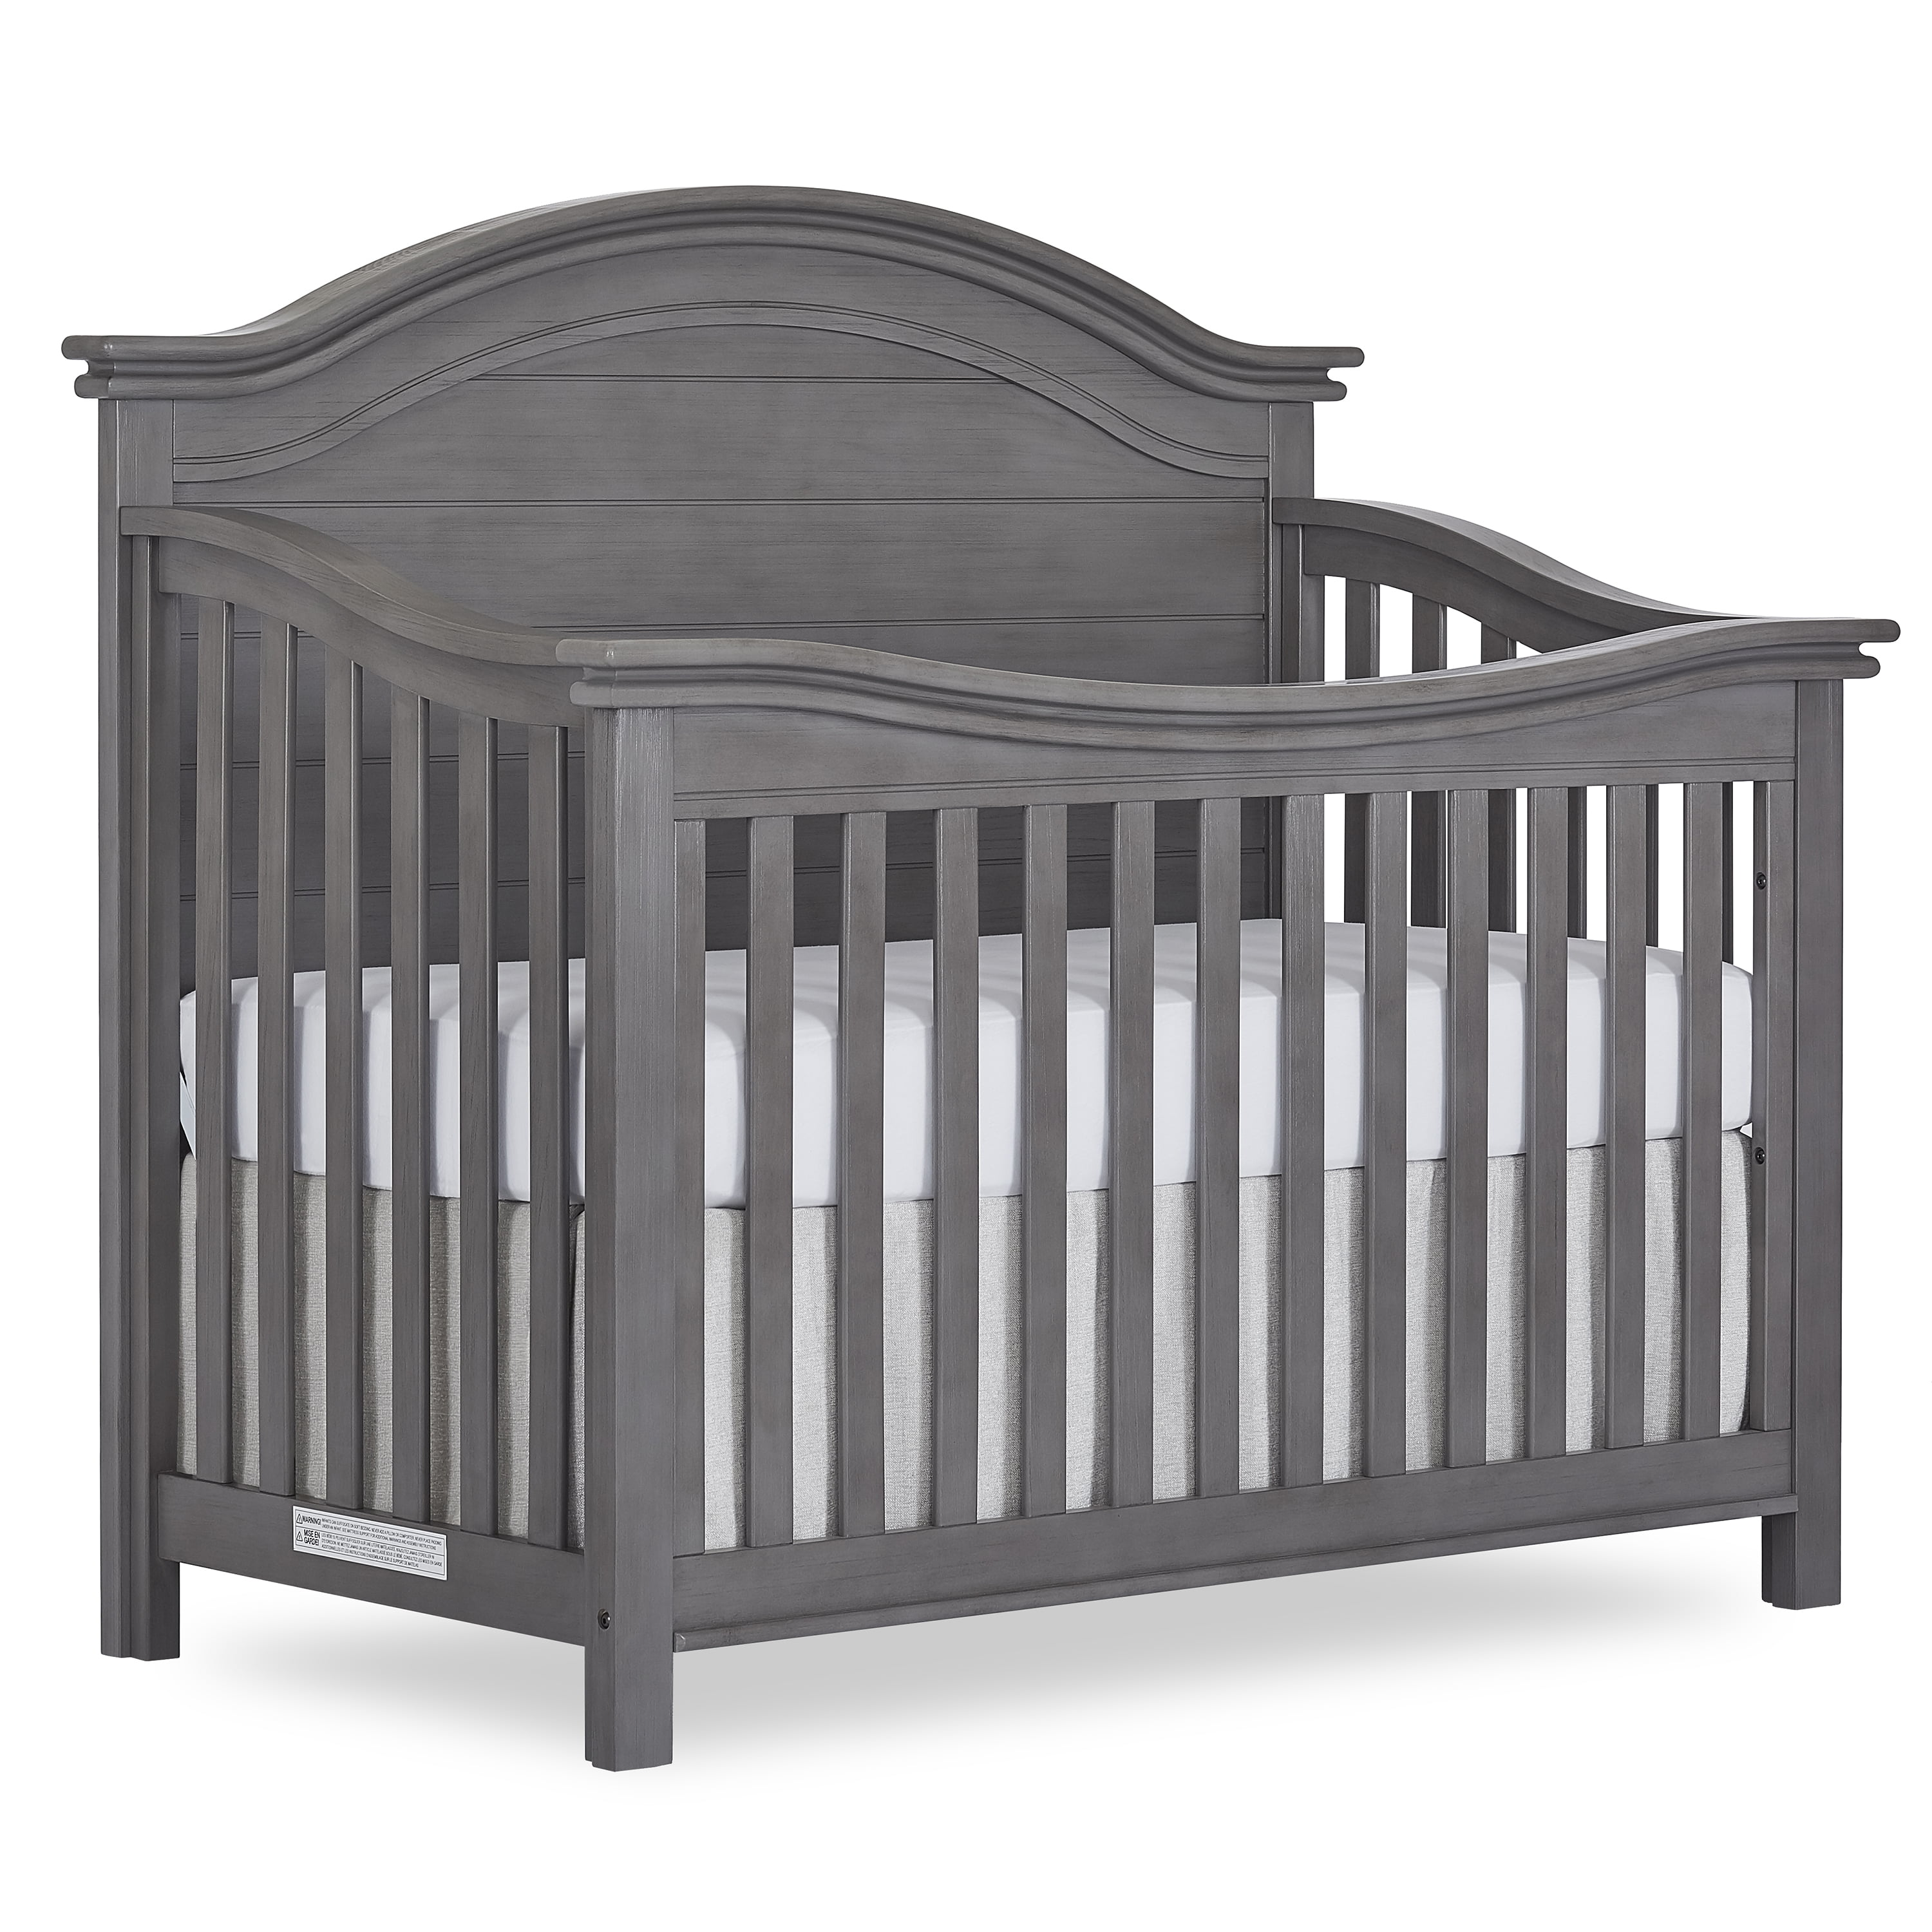 Evolur Belmar Curve 5 in 1 Convertible Crib Rustic Grey by Evolur